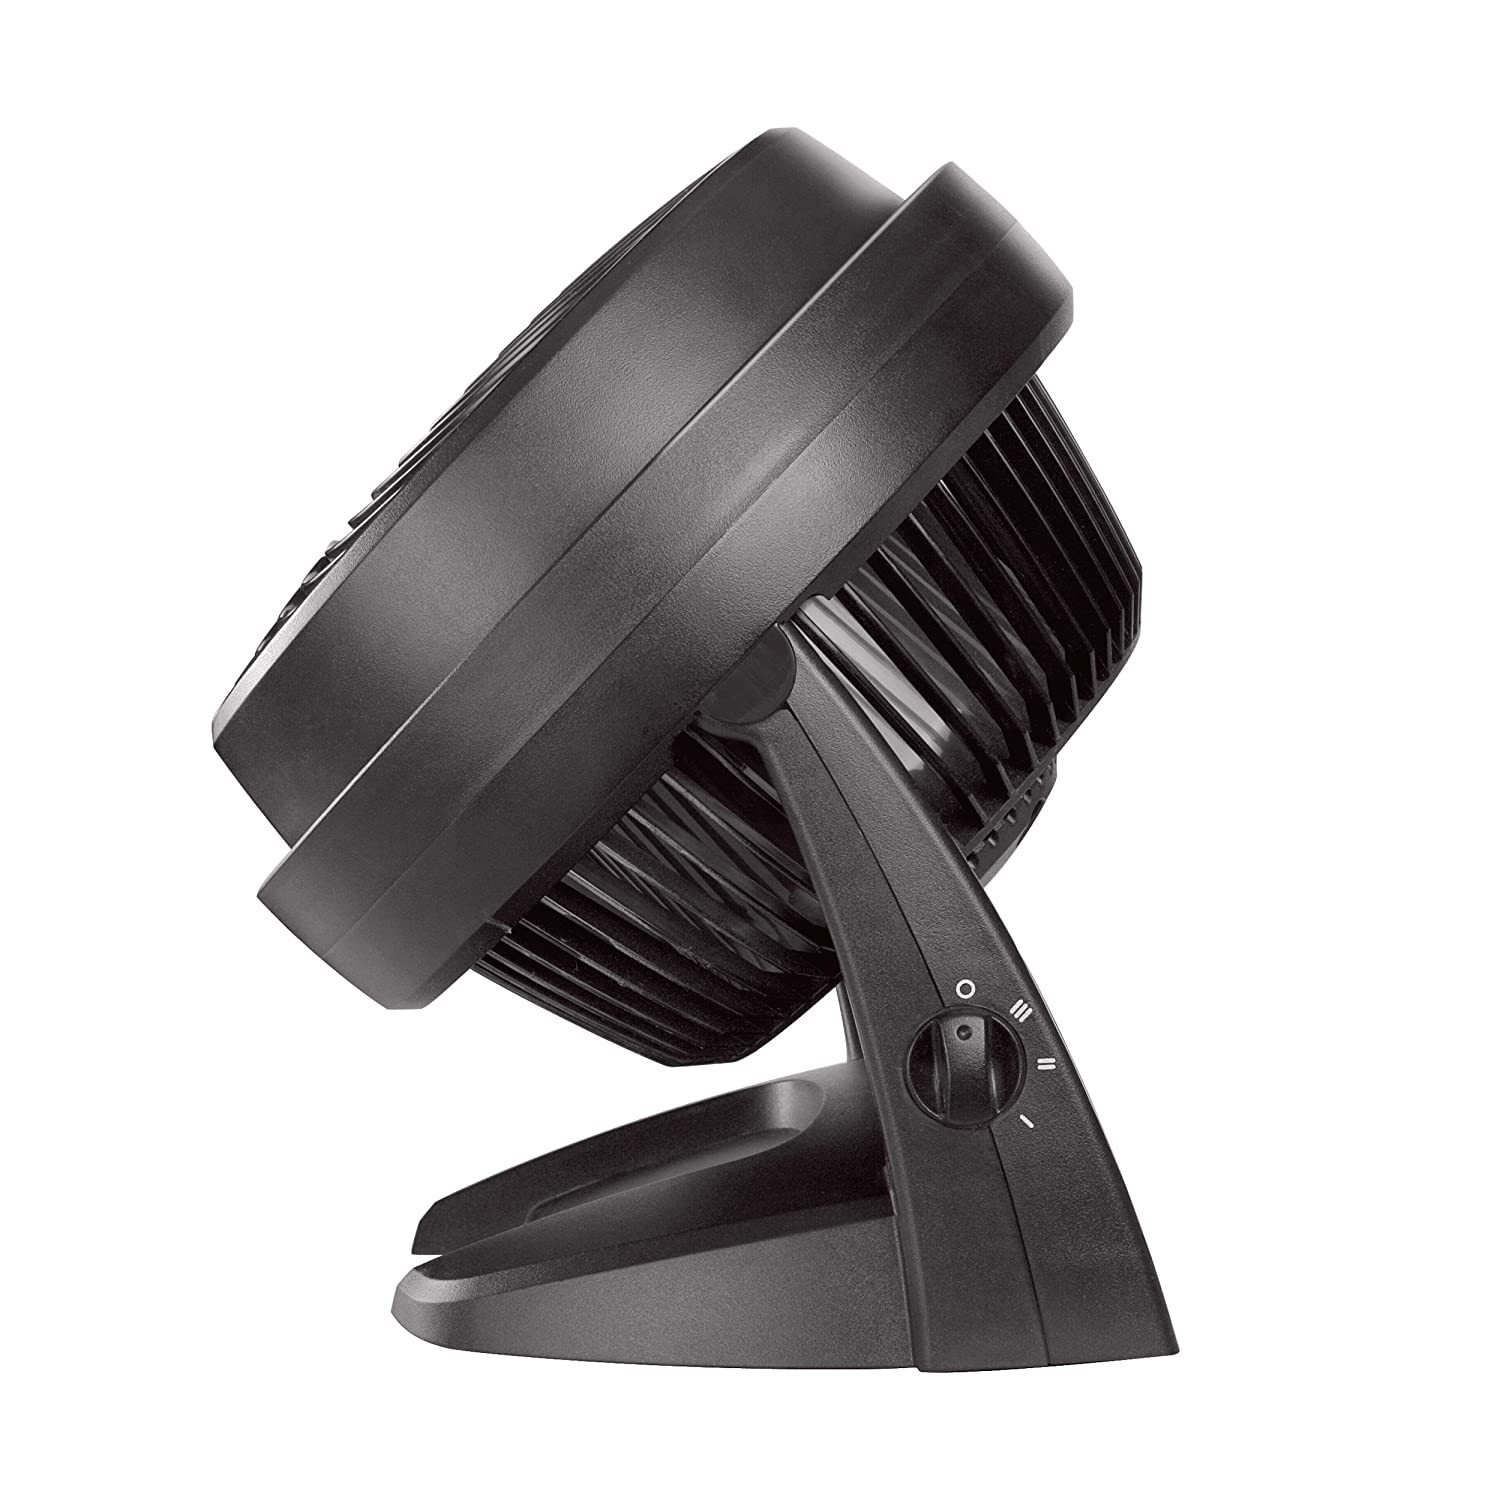 Amazon.com: Vornado 630 Mid-Size Whole Room Air Circulator Fan: Home &  Kitchen